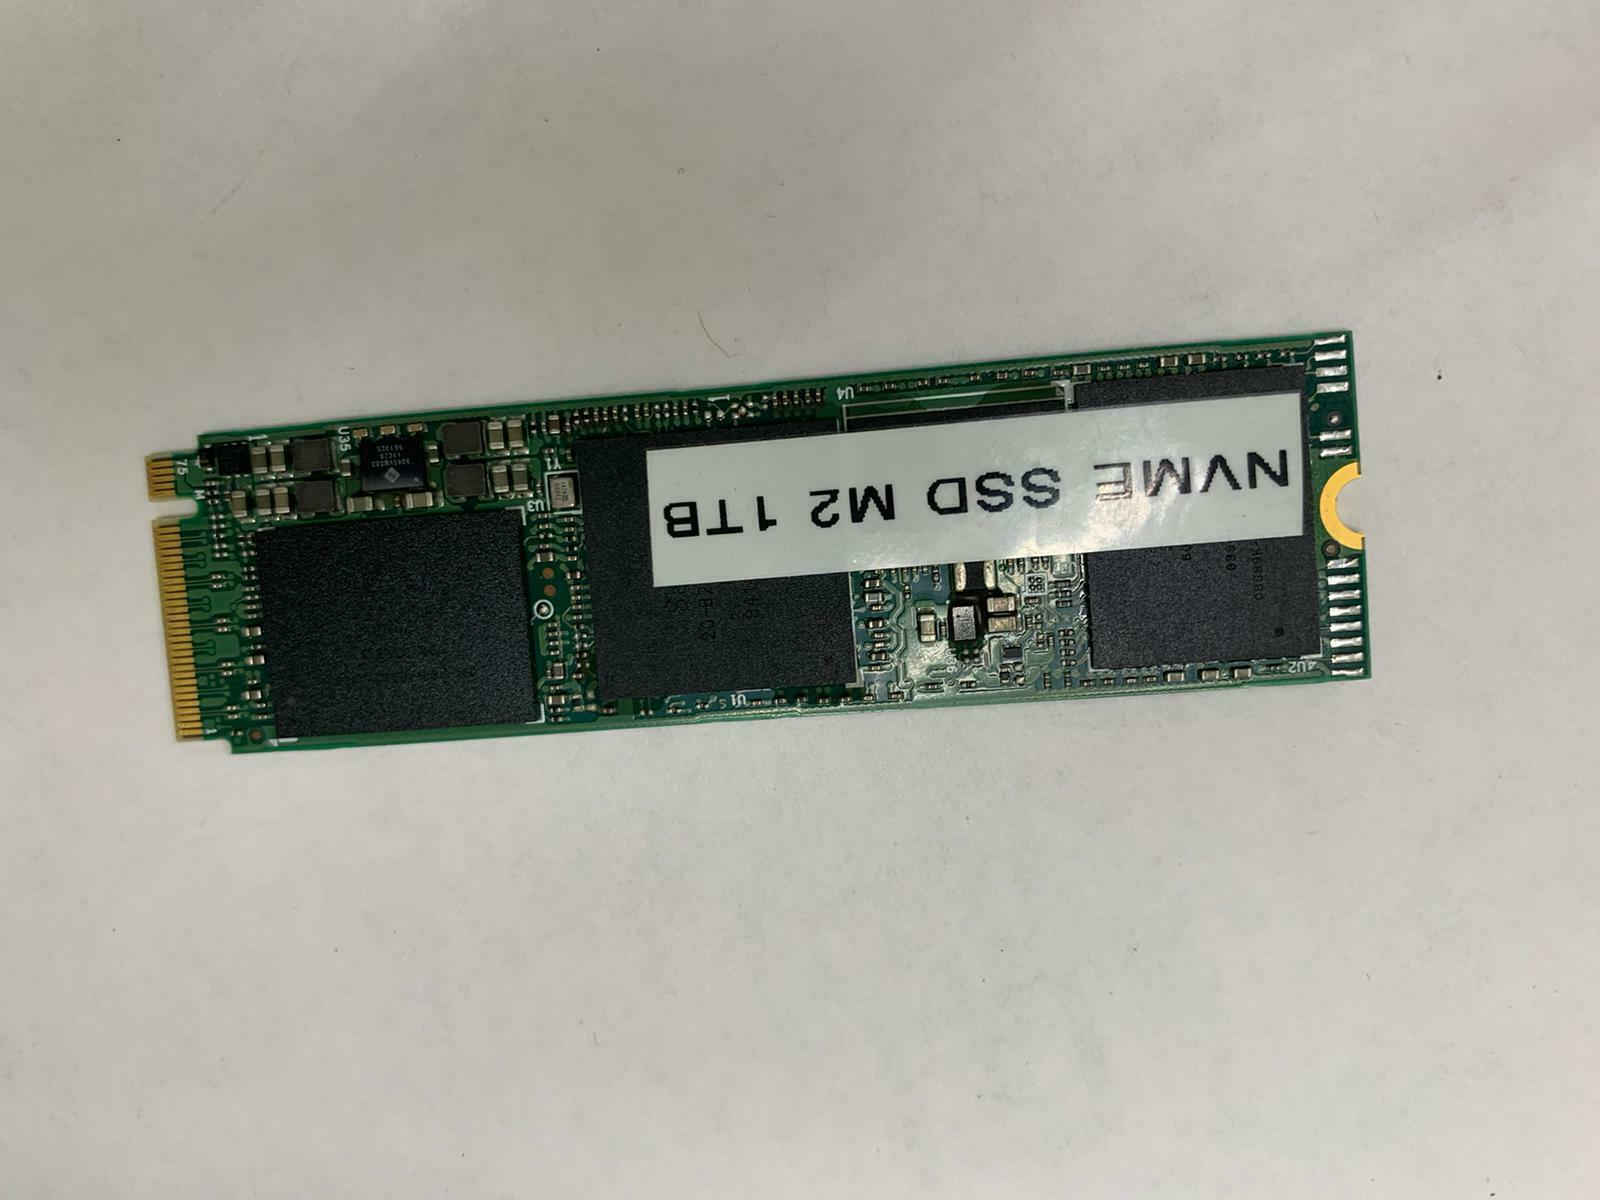 Primary image for NVME SSD M2 1TB NVMe Interface Internal Solid State Drive